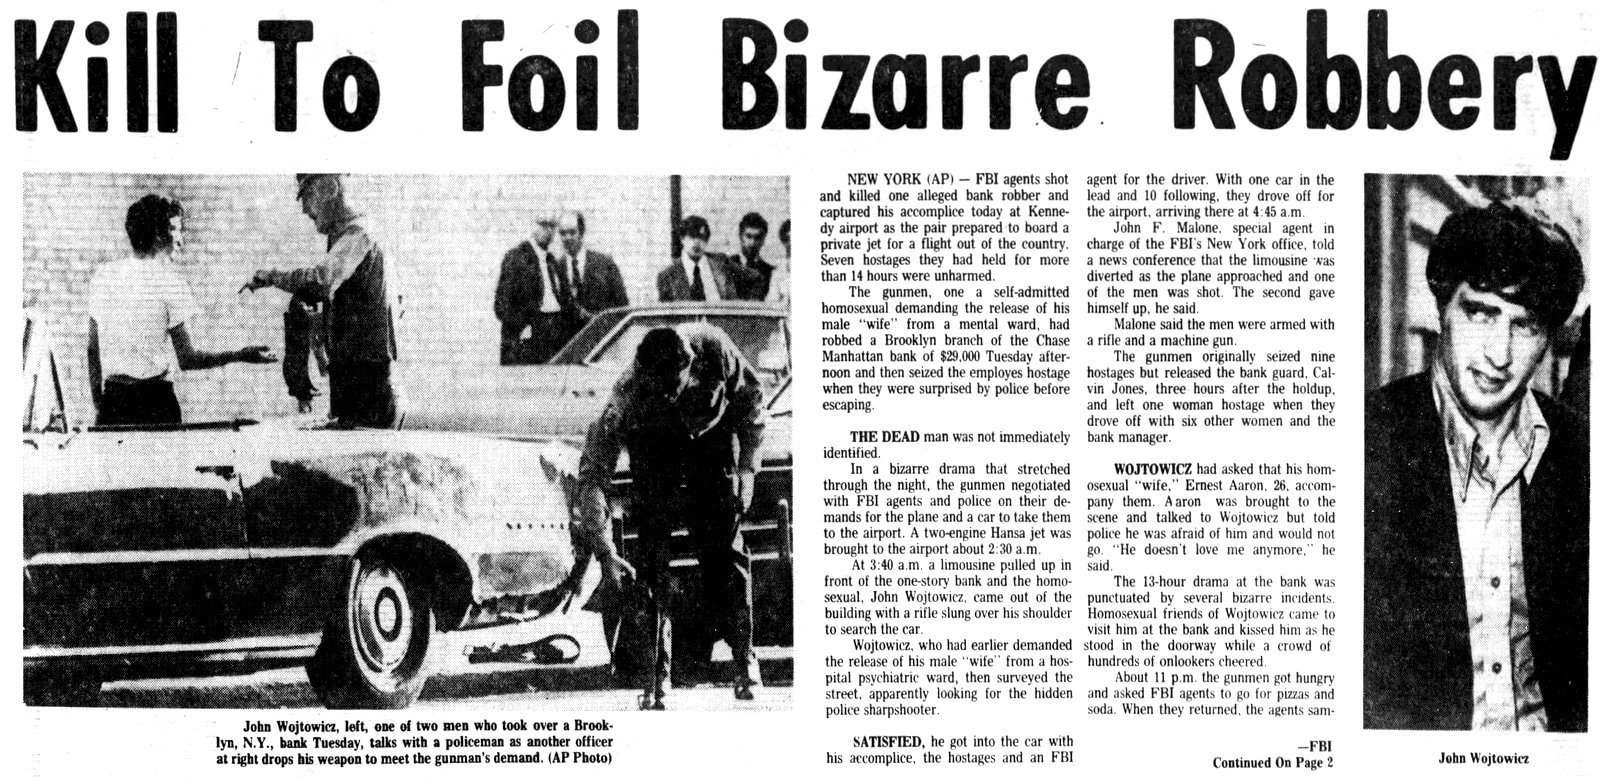 The bizarre real story of the bank robbery behind Dog Day Afternoon - Quad City Times - AUg 23 1972